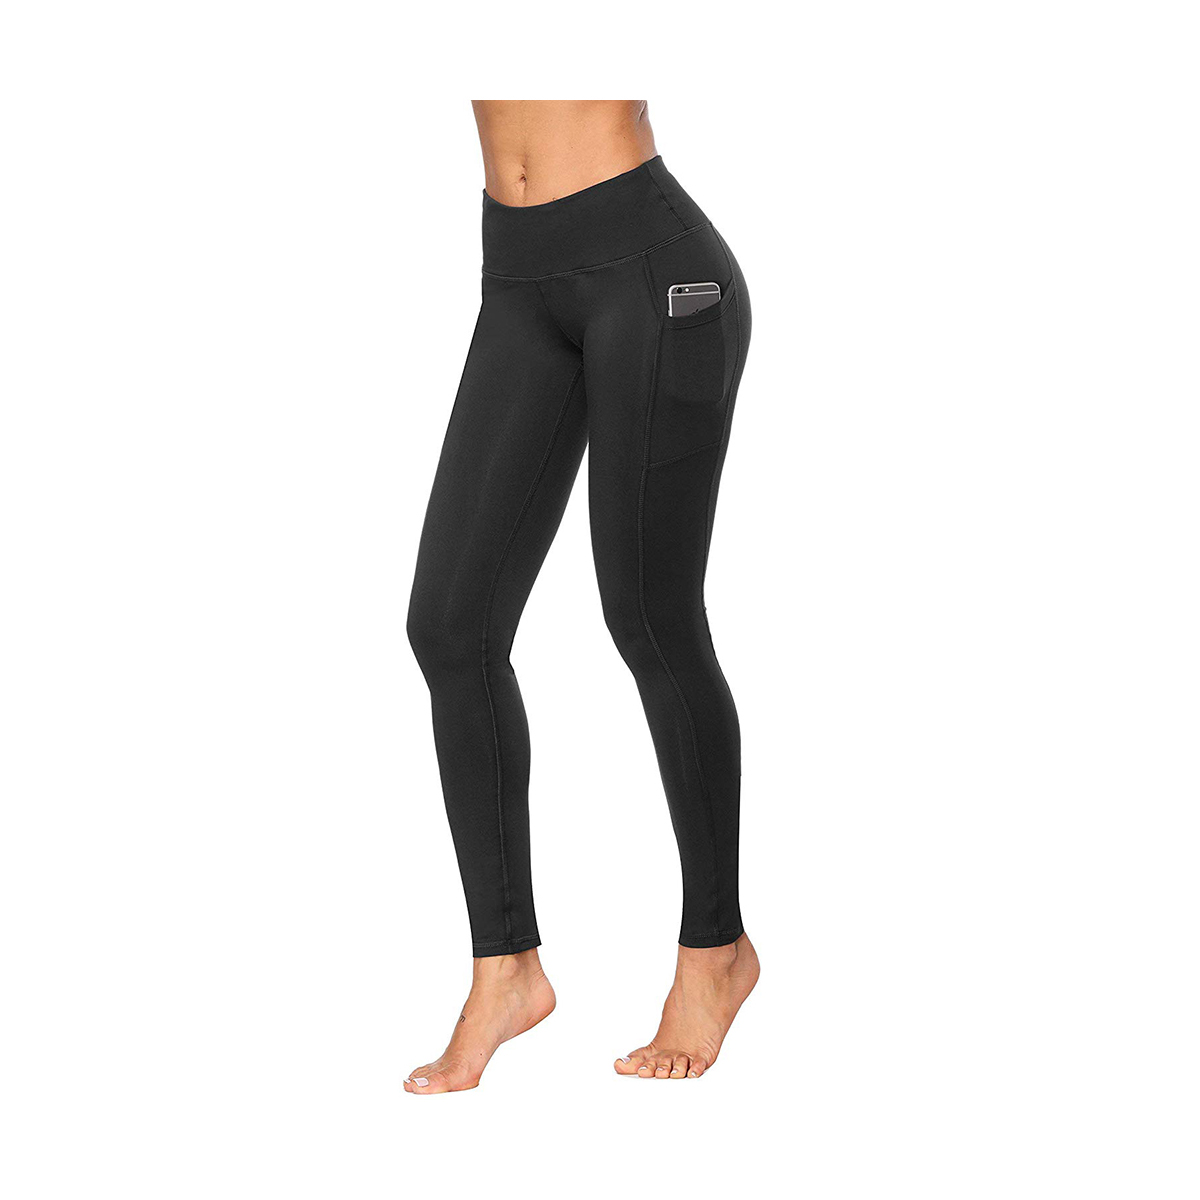 b1360a132cf64 Best Option With Pockets  Fengbay High Waist Yoga Pants With Pockets